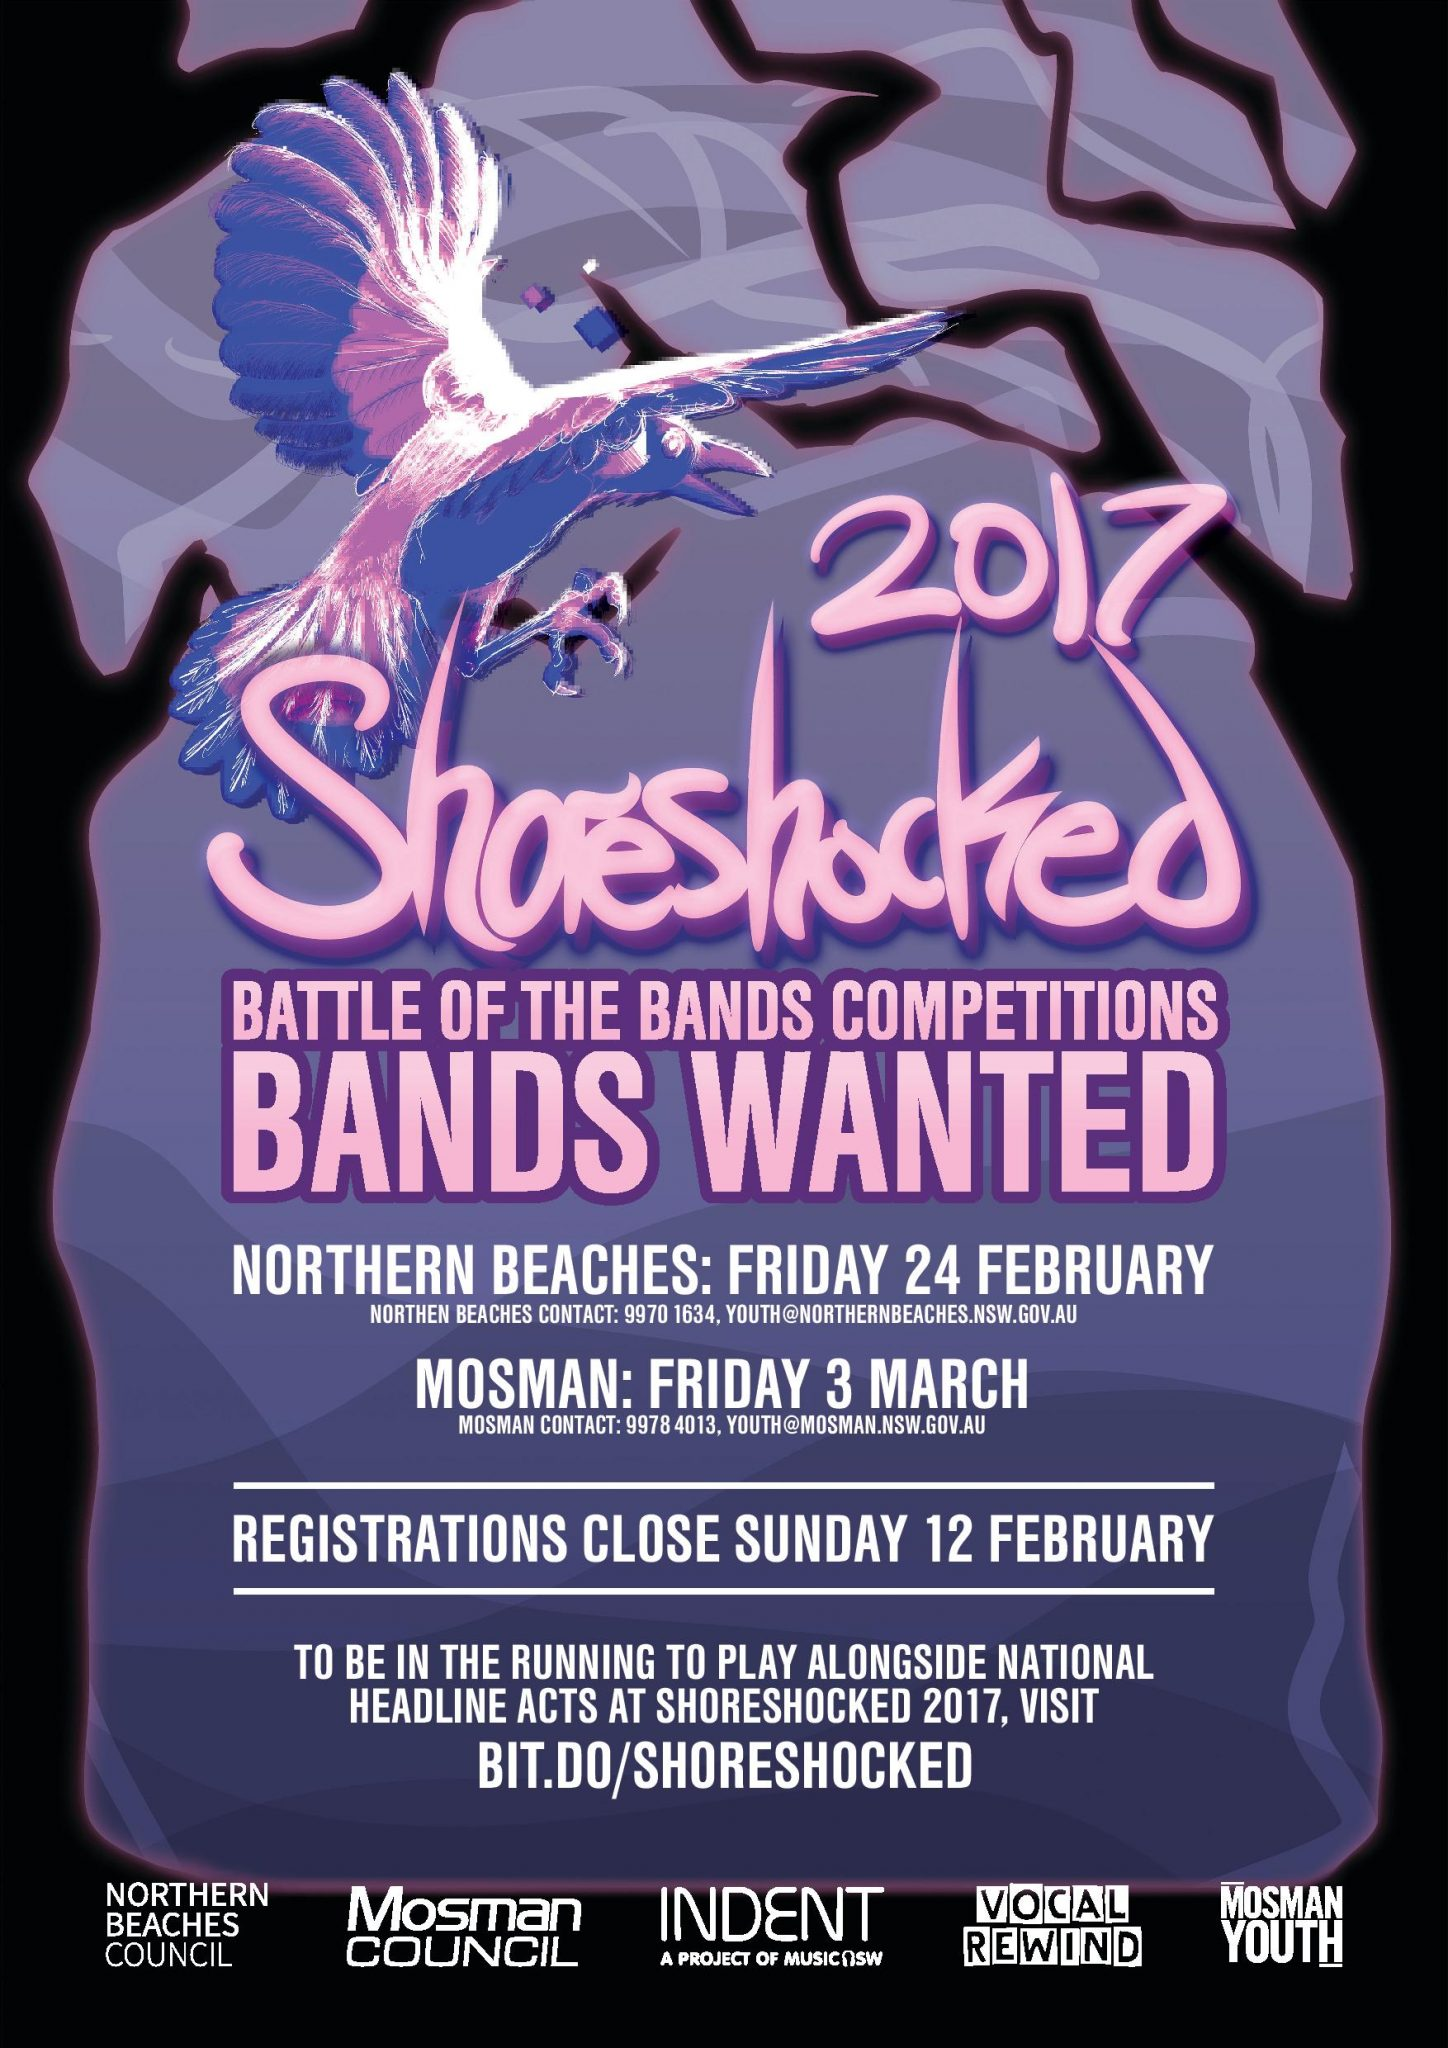 160265-003-shoreshocked-bands-wanted-poster-01-page-001